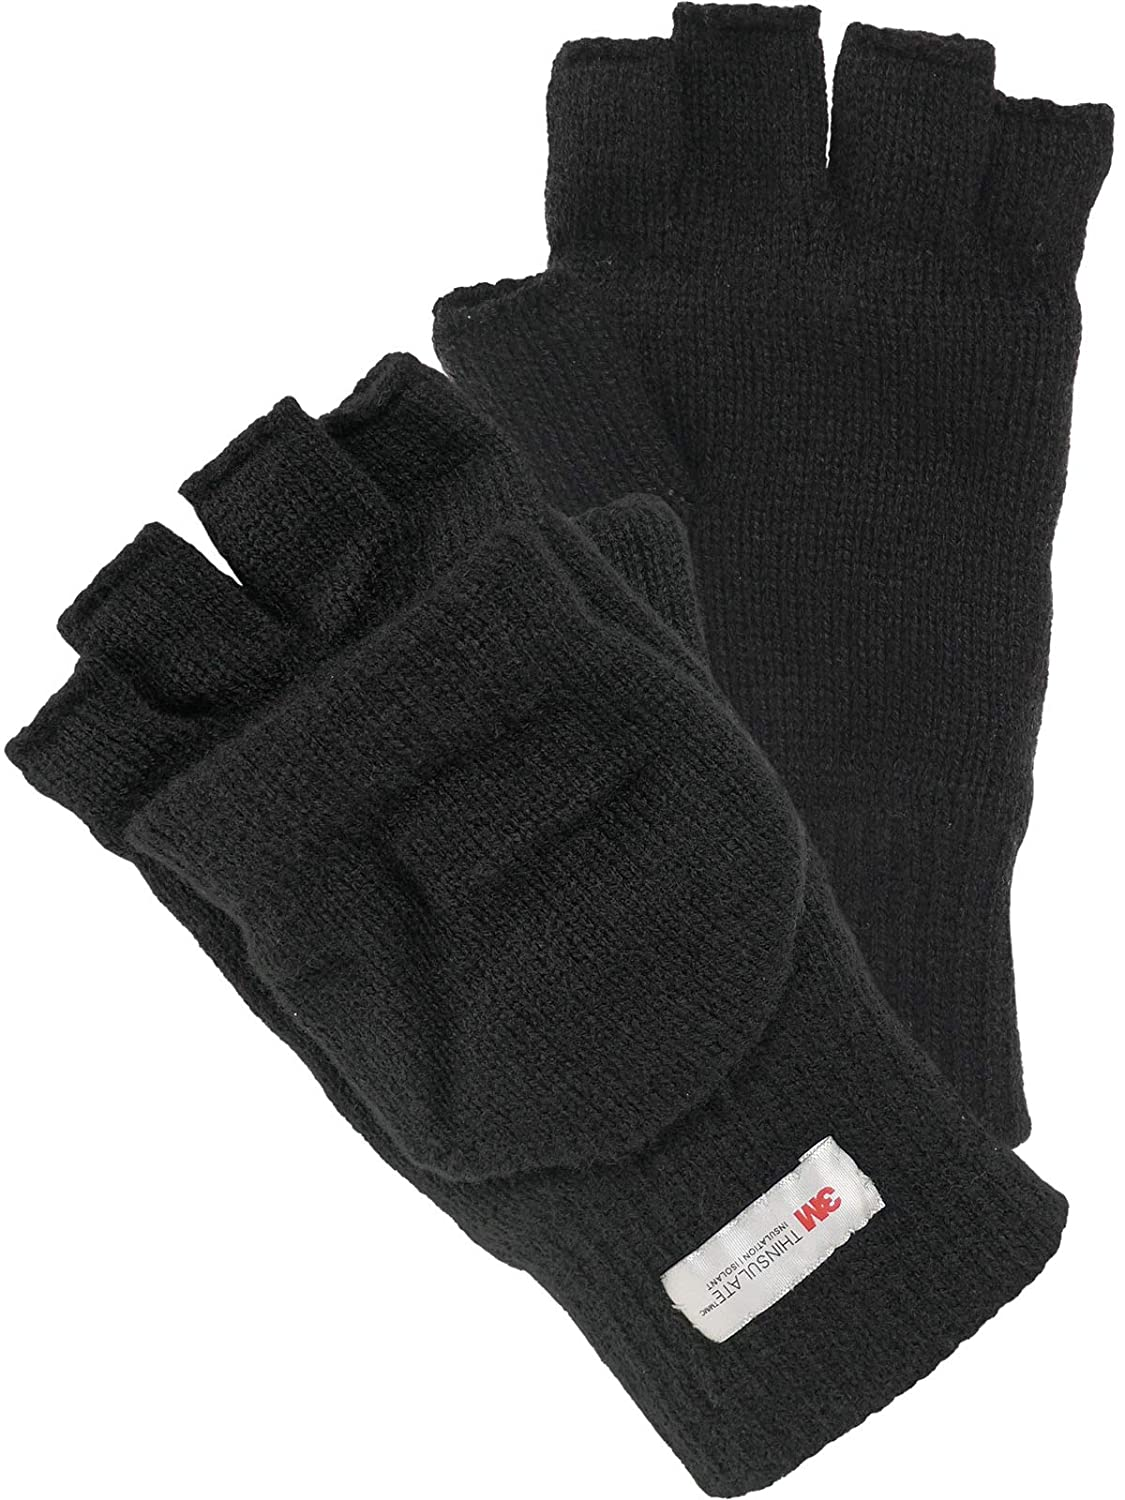 Harrys-Collection Halbfinger Handschuh mit Klappe warm gef/üttert